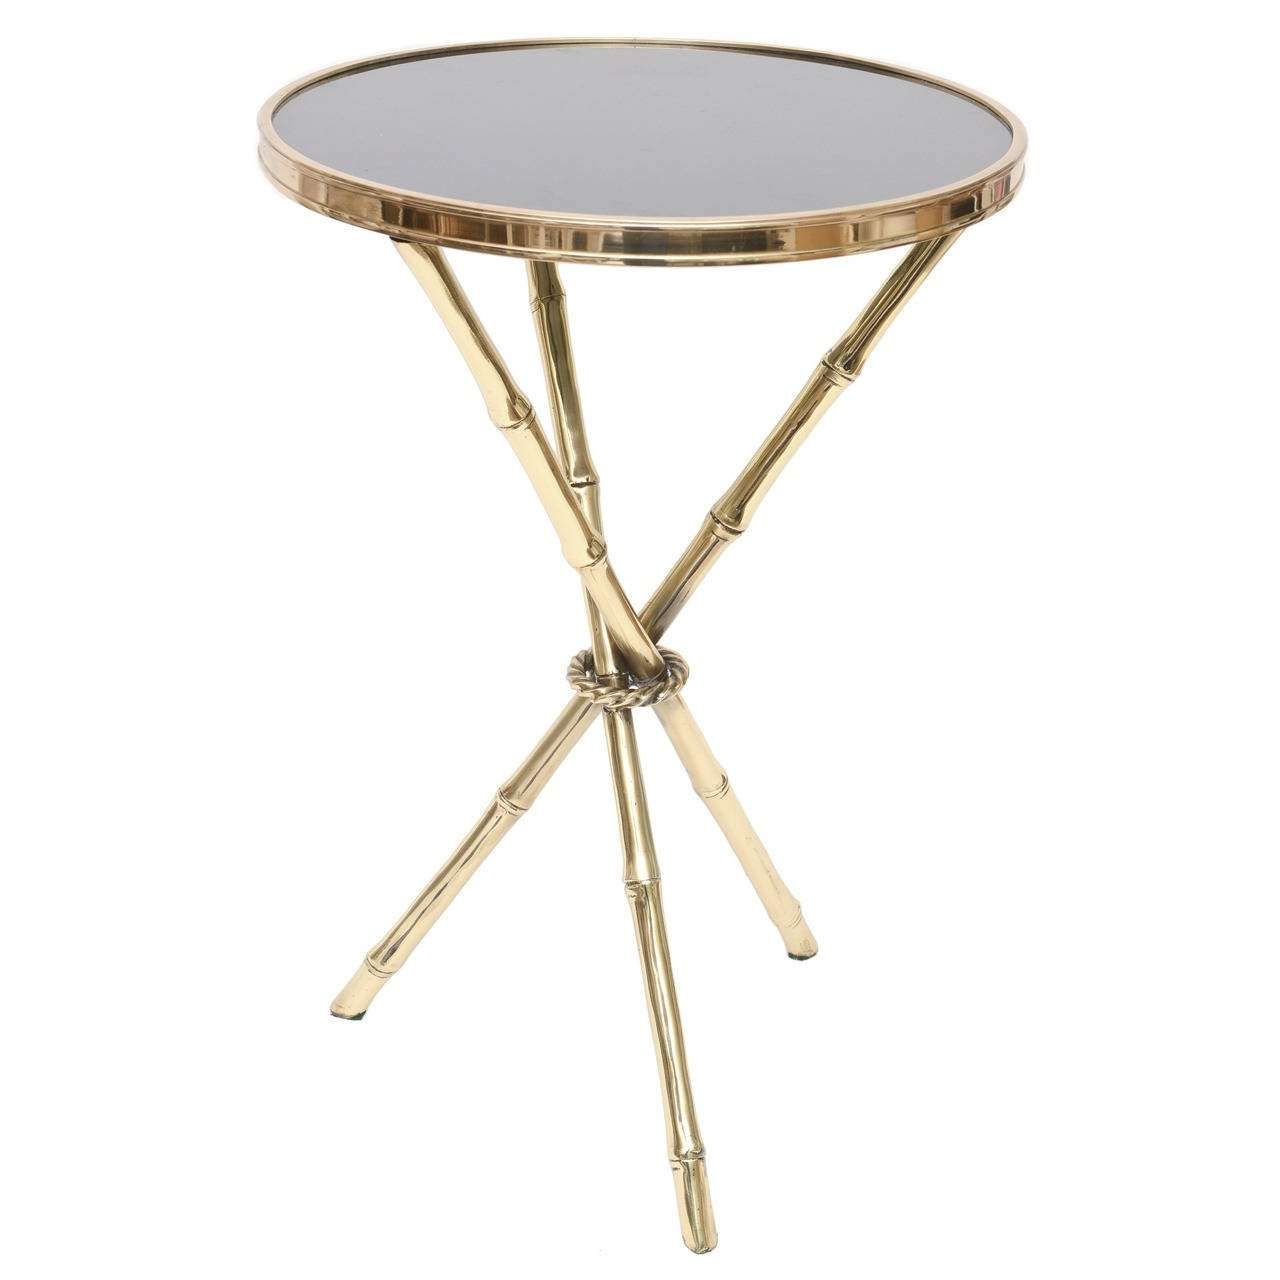 2017 Gold Bamboo Coffee Tables Pertaining To Chic Italian Polished Brass And Granite Faux Bamboo Tripod Side (View 1 of 20)